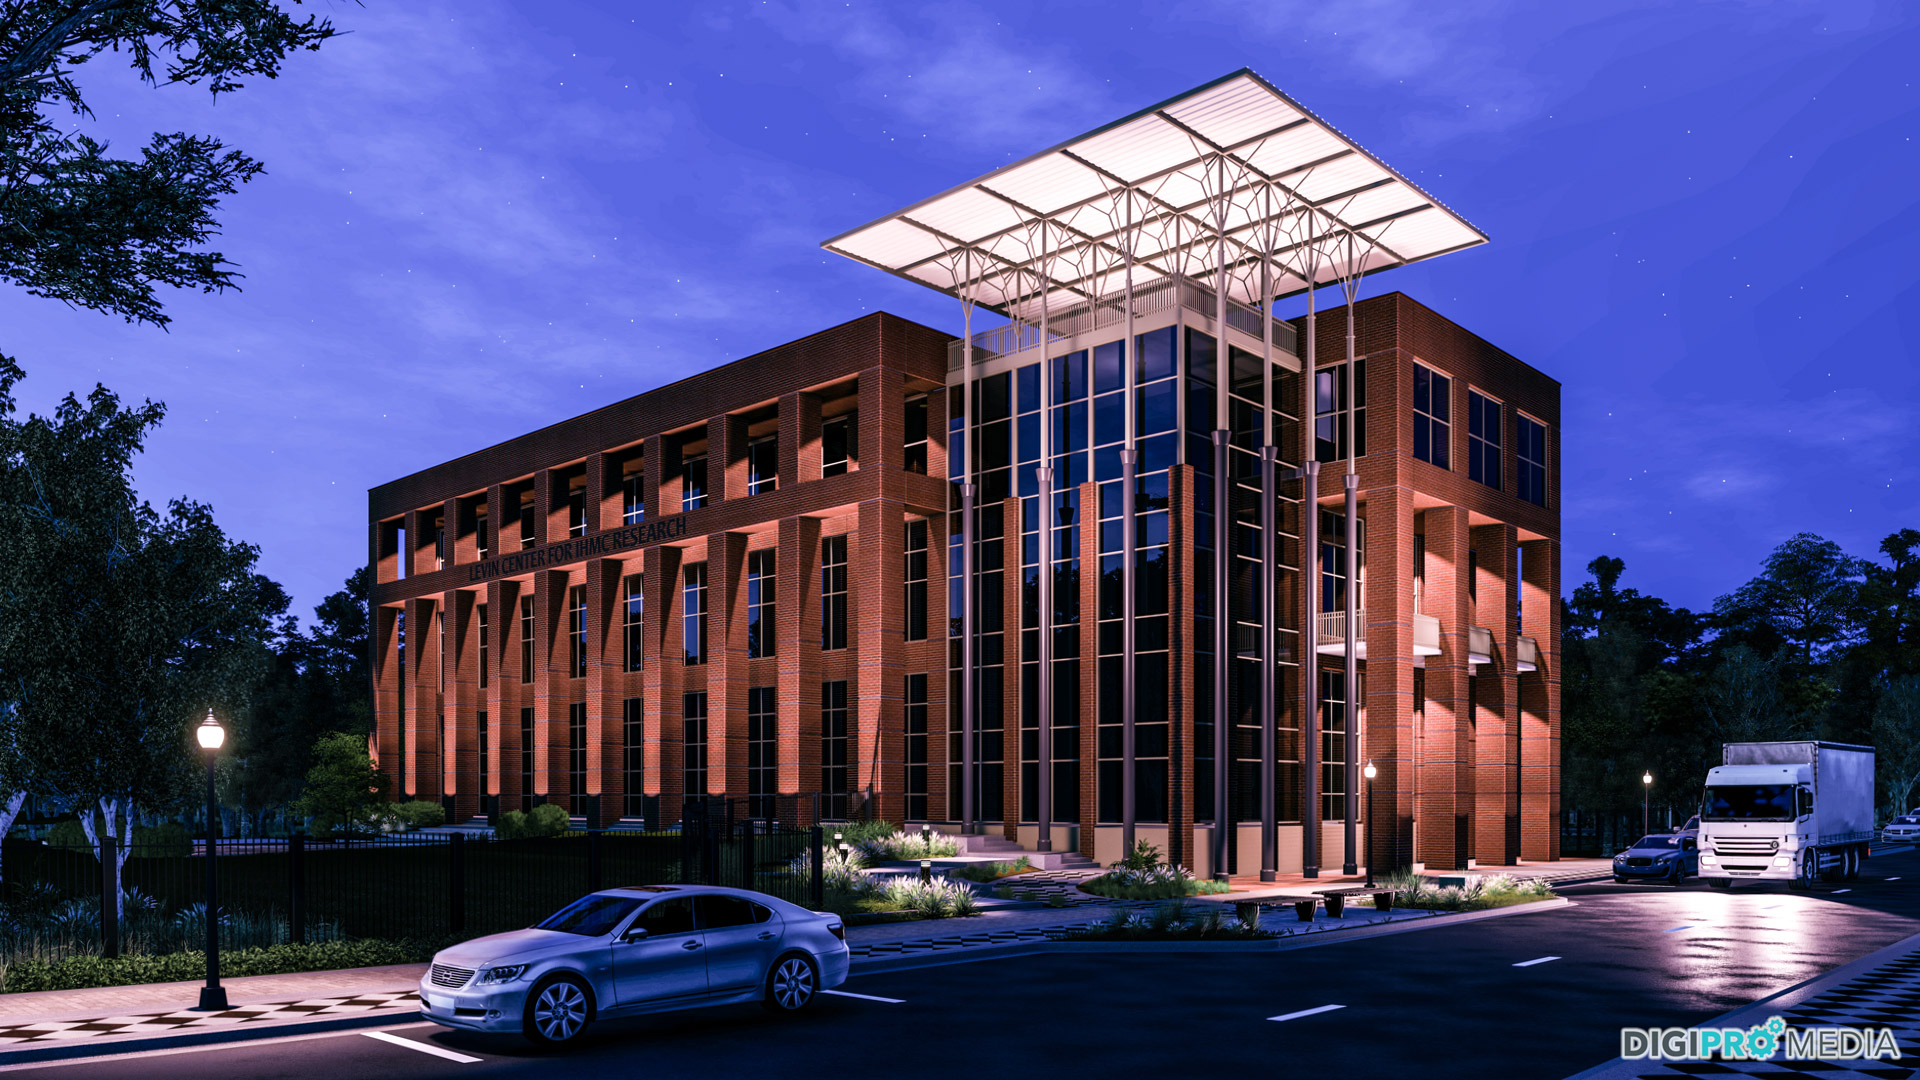 3d rendering of the Institute for Human and Machine Cognition at night.